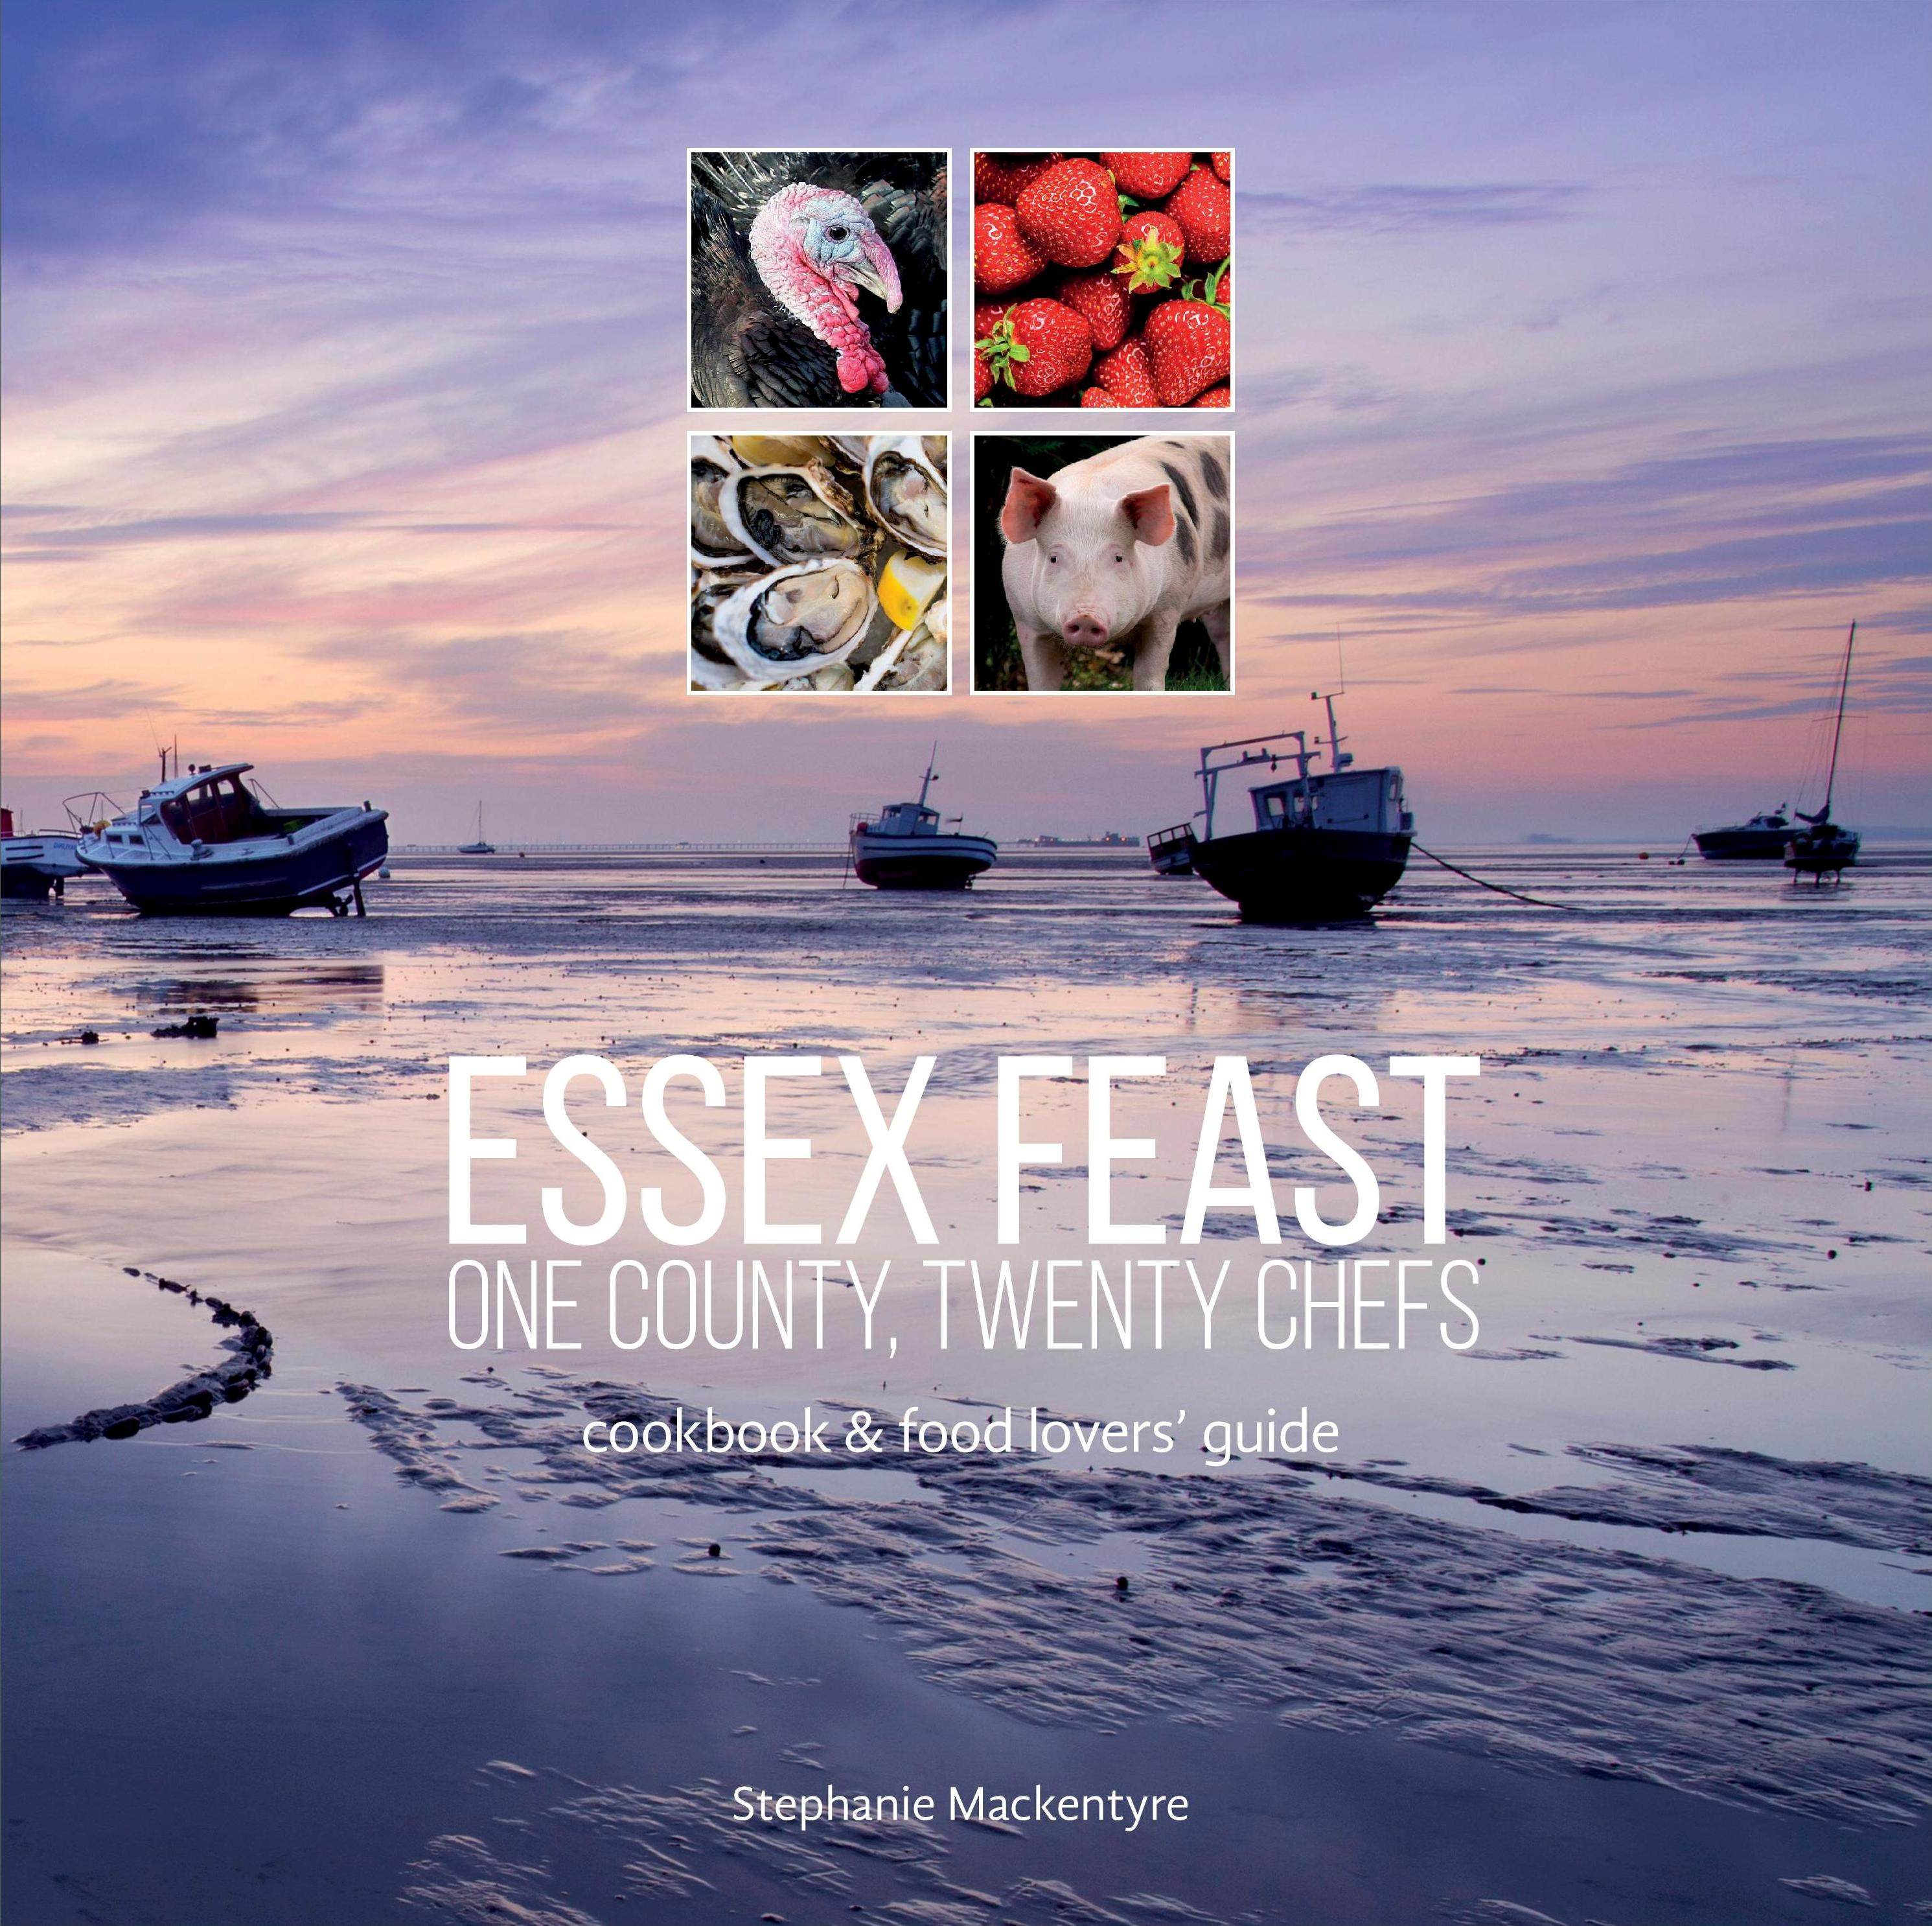 Essex Feast Cook Book Cover